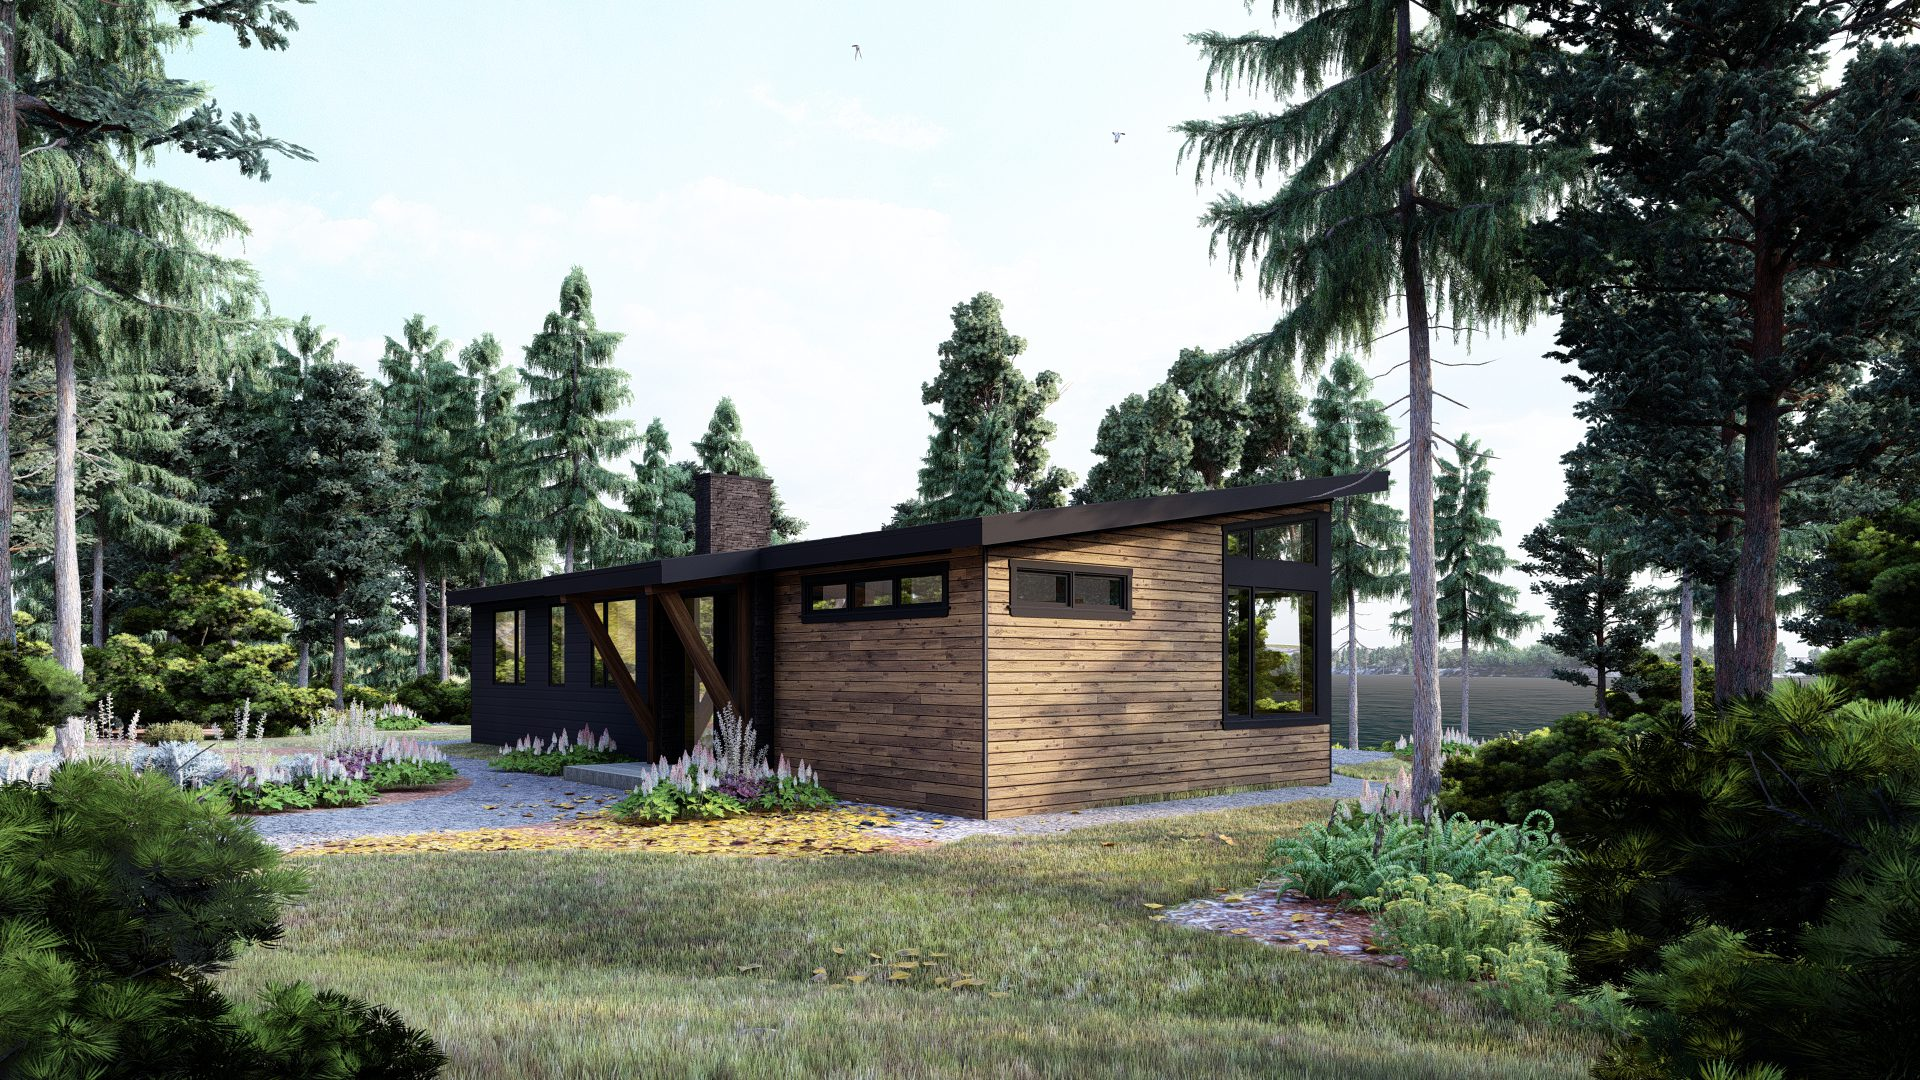 Normerica Timber Frames, House Plan, The Bayfield 3945, Exterior, Front